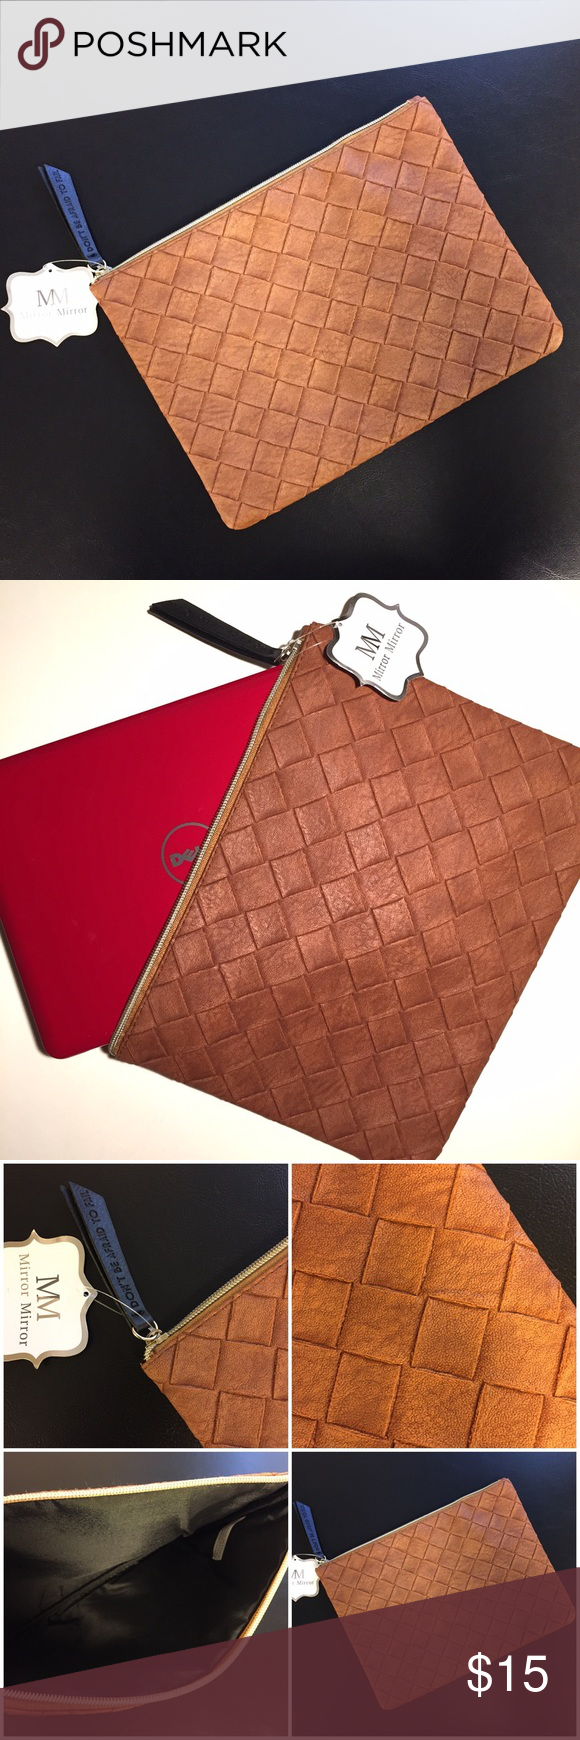 Tech Case Faux leather tech case, brand new. Color is cognac -- see last photo for most accurate depiction of color. 8 x 11 Mirror Mirror Accessories Tablet Cases